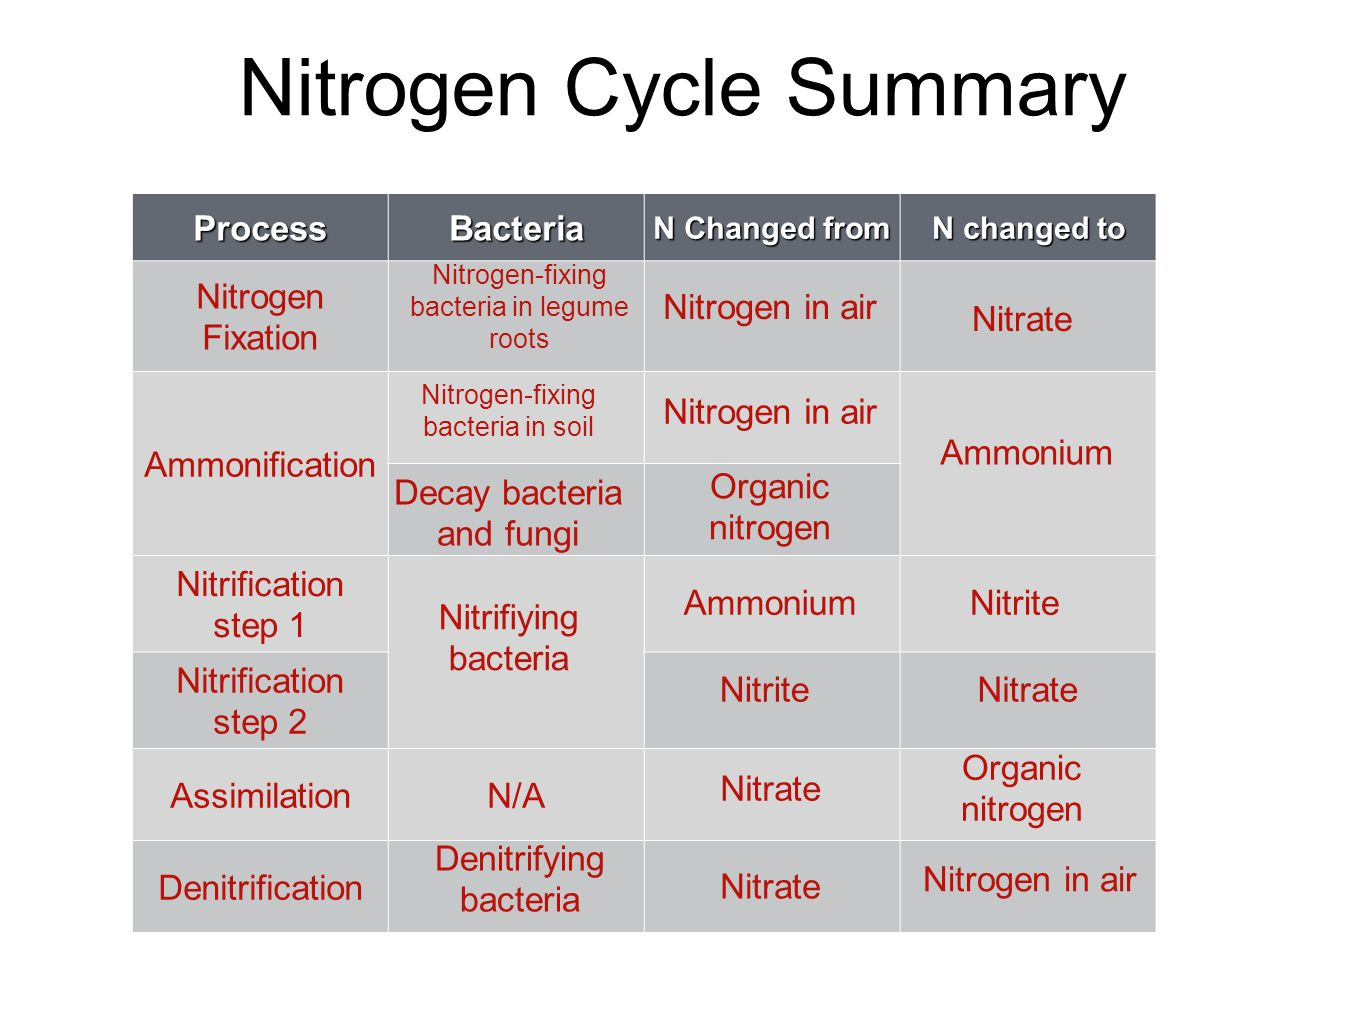 Nitrogen Cycle Summary ProcessBacteria N Changed from N changed to Nitrogen Fixation Ammonification Nitrification step 1 Nitrification step 2 Assimila